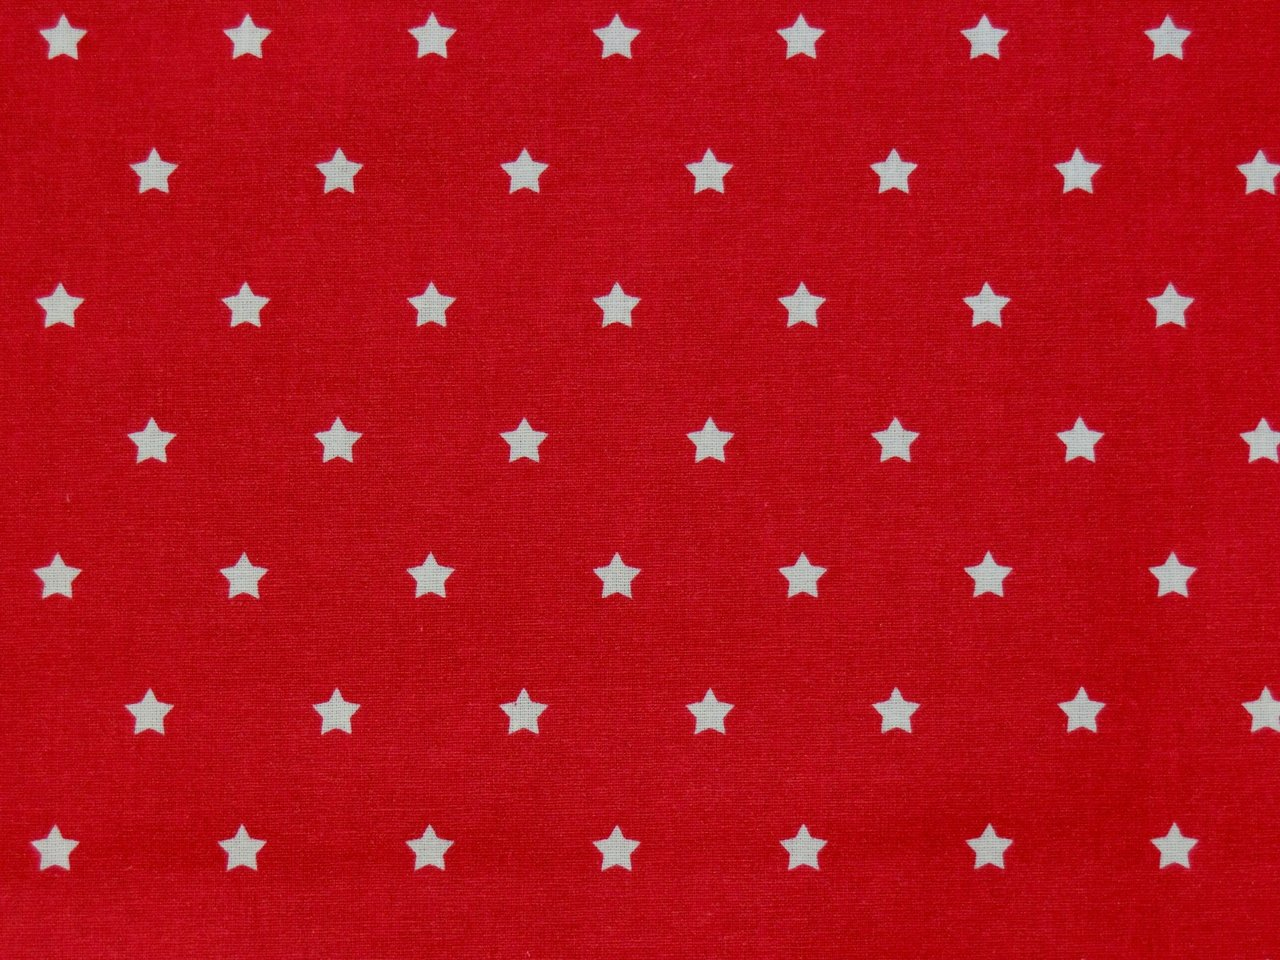 USA Cotton Laminated Stars red white